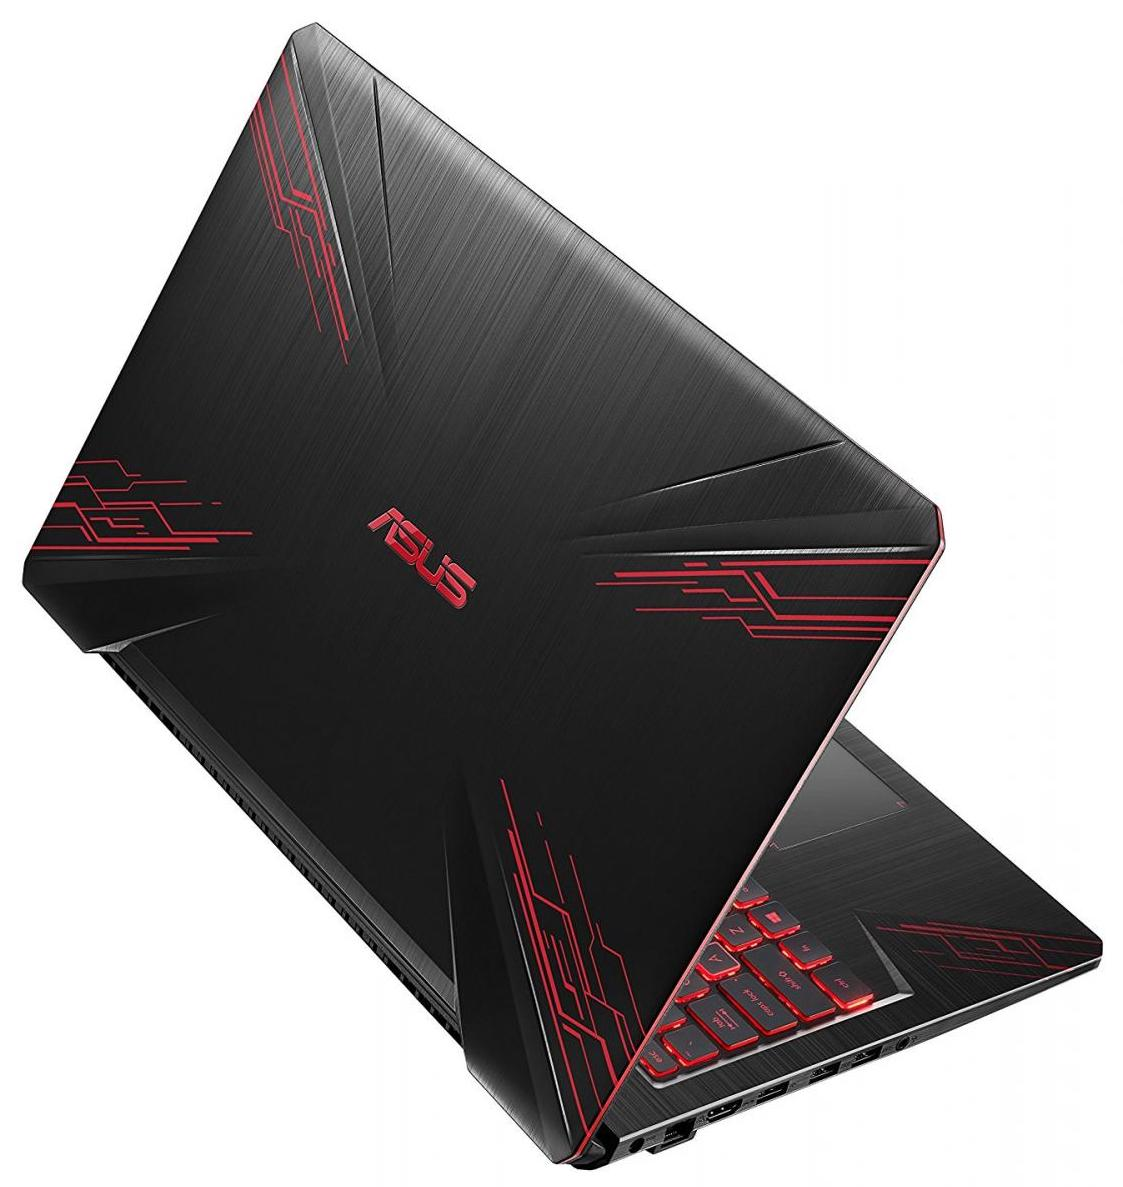 Asus TUF FX504GD Specs, Details, Review